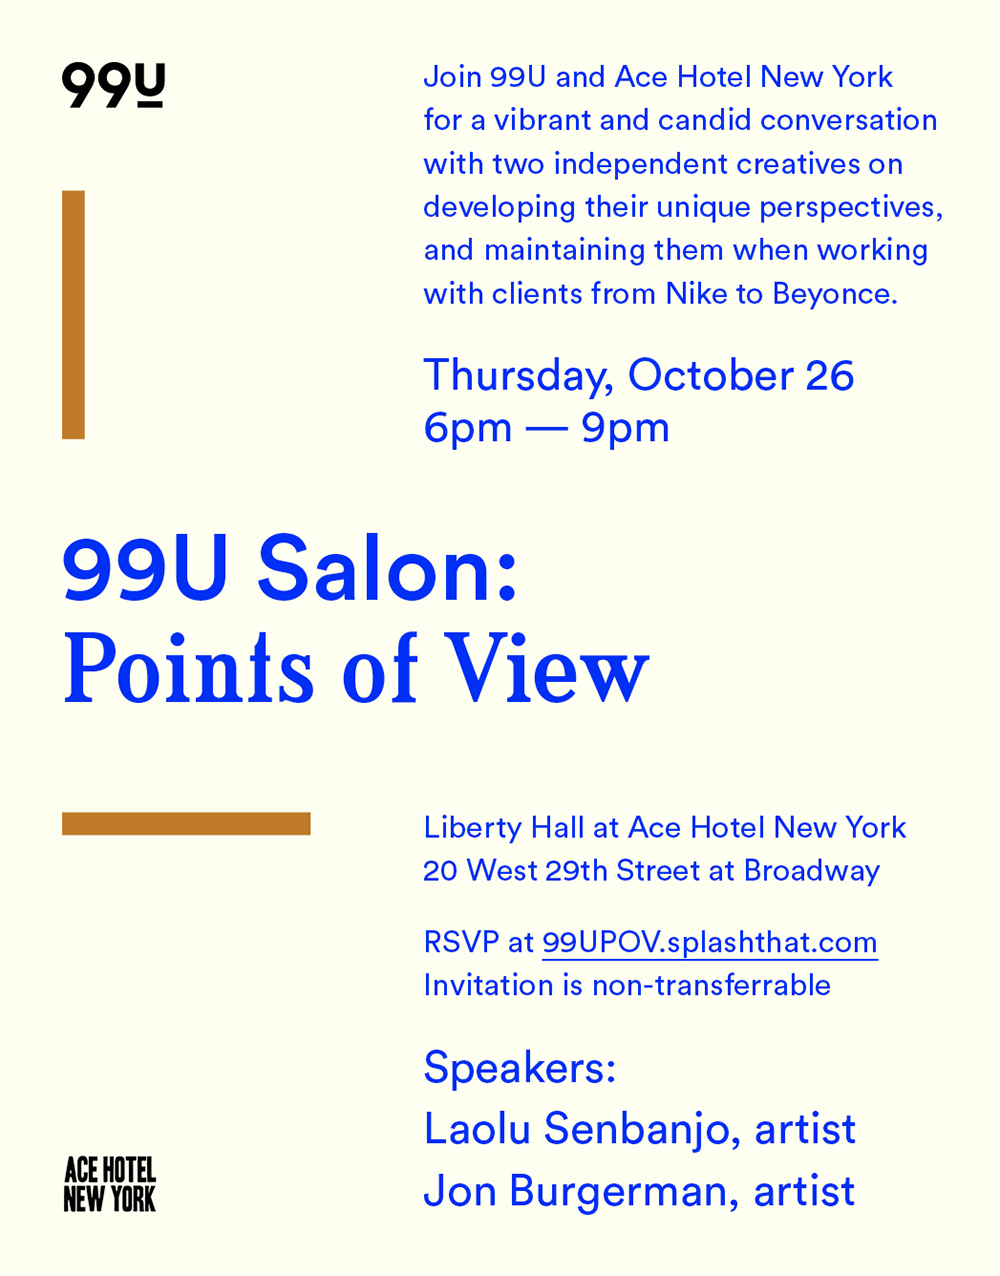 99U Salon invitation.jpg